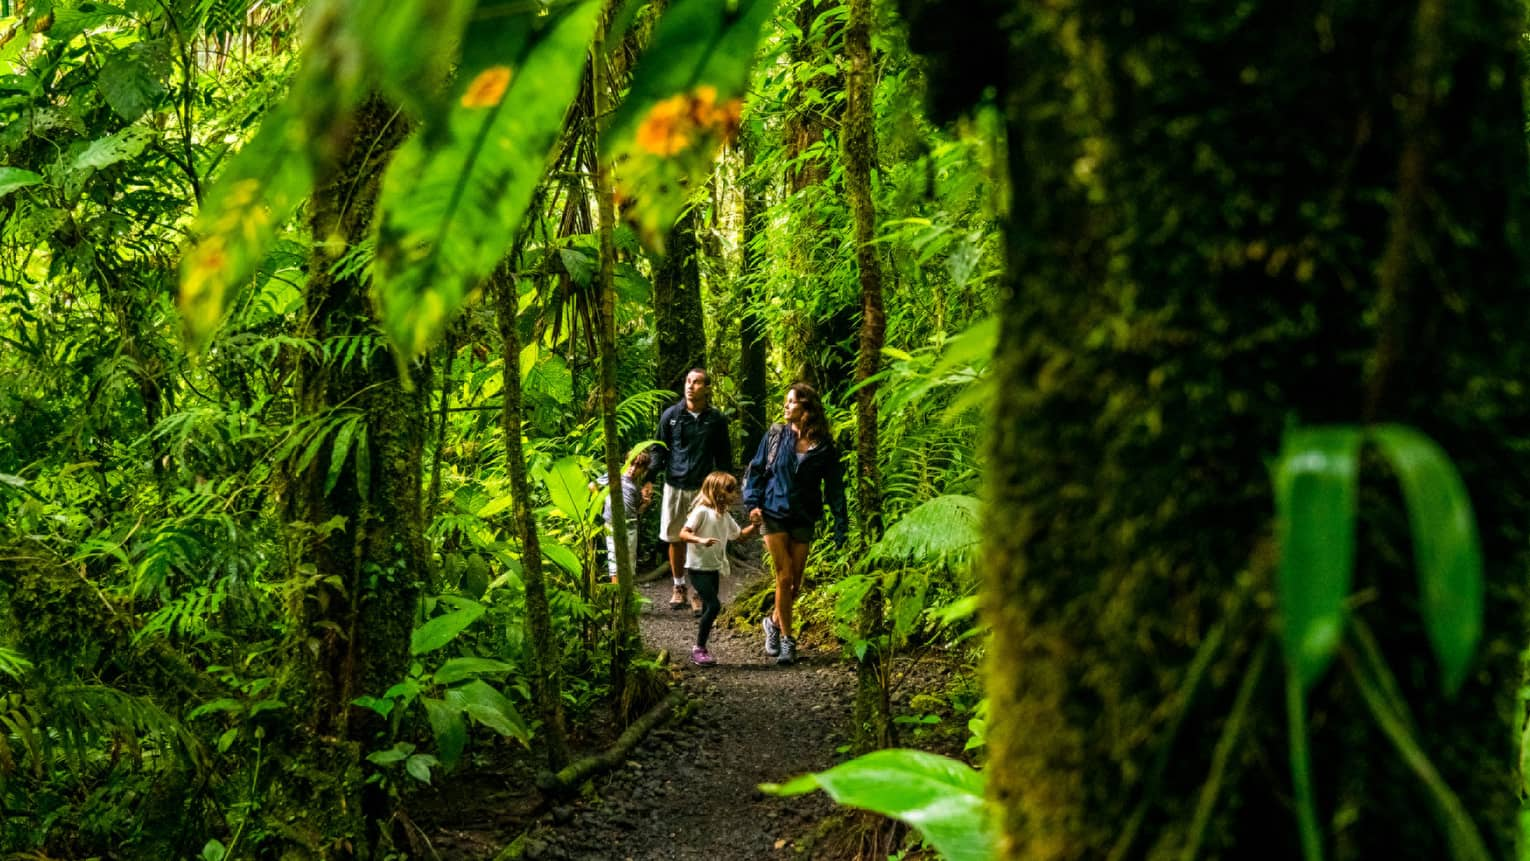 Young family of four hike through forest trail under lush canopy of tropical trees